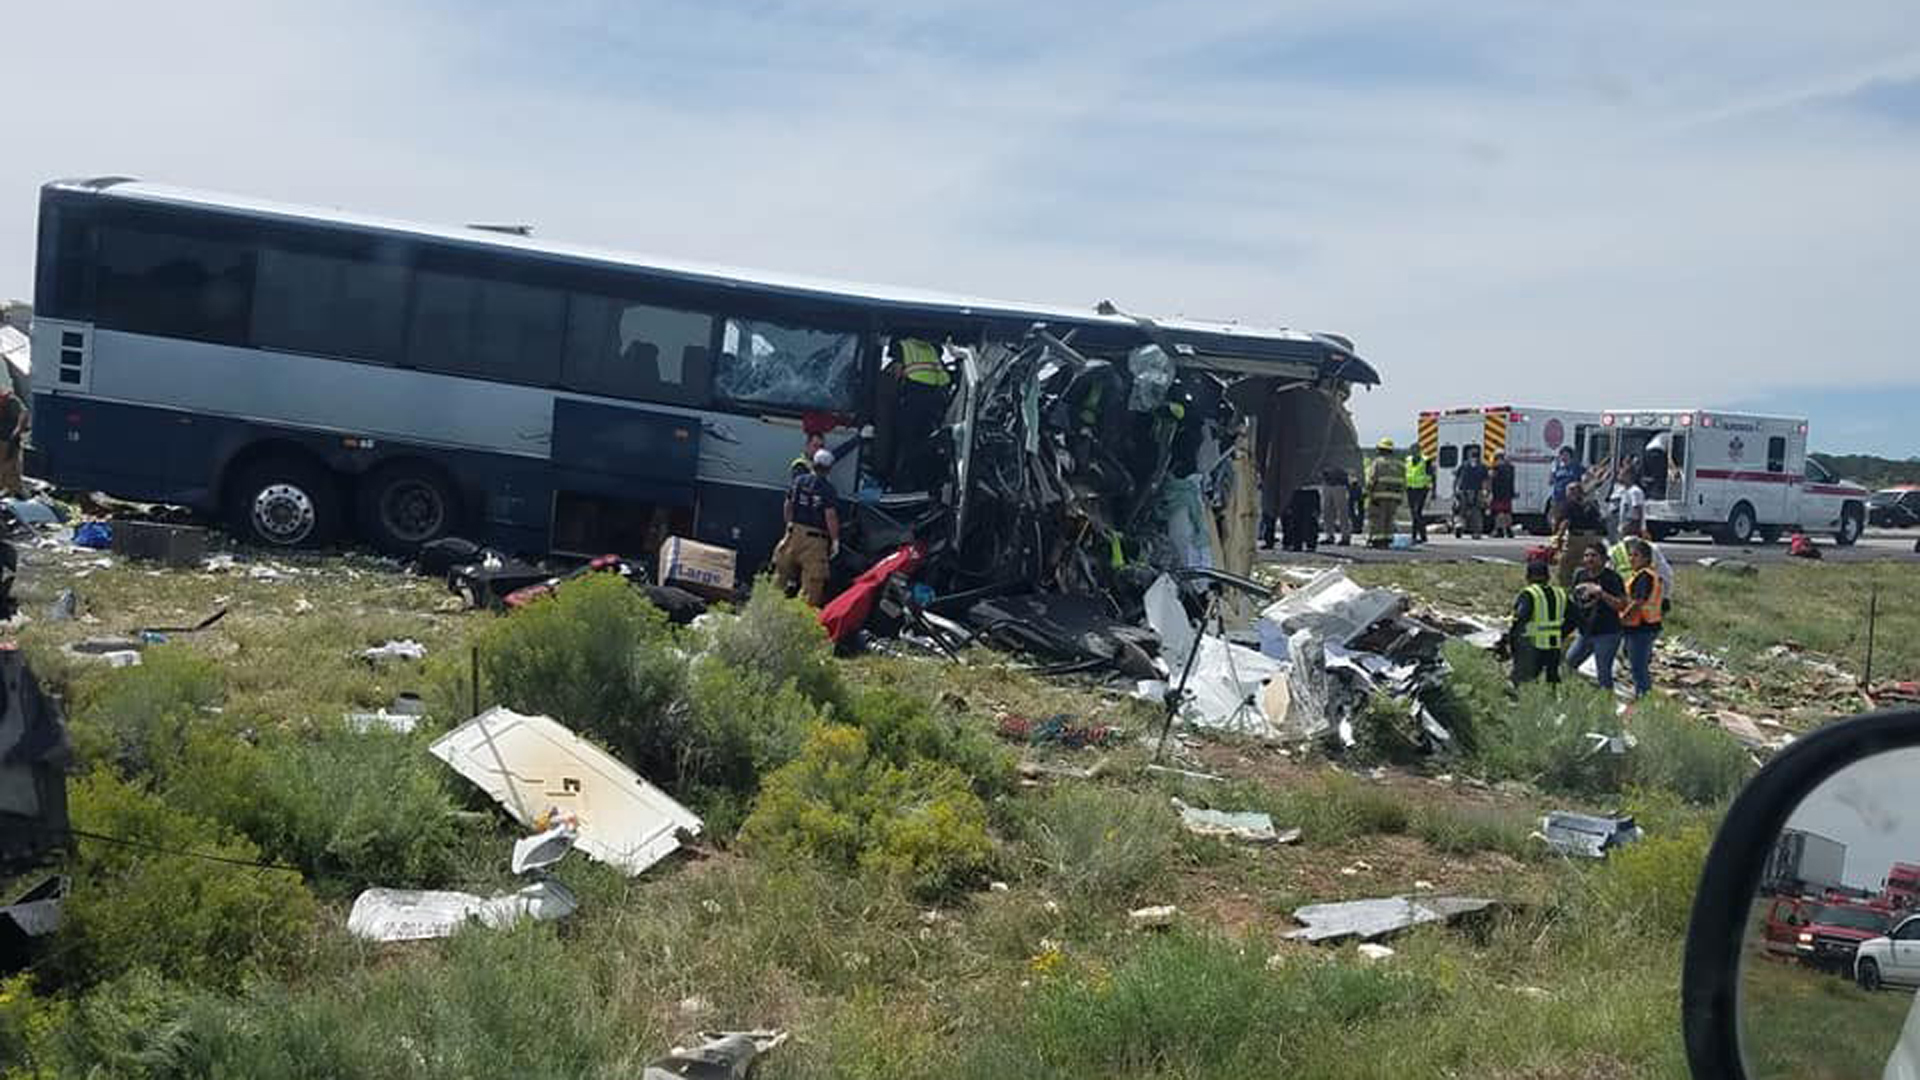 A Greyhound bus was involved in a crash in northwestern New Mexico on Thursday. (Credit: Chris Jones/Facebook via CNN Wire)